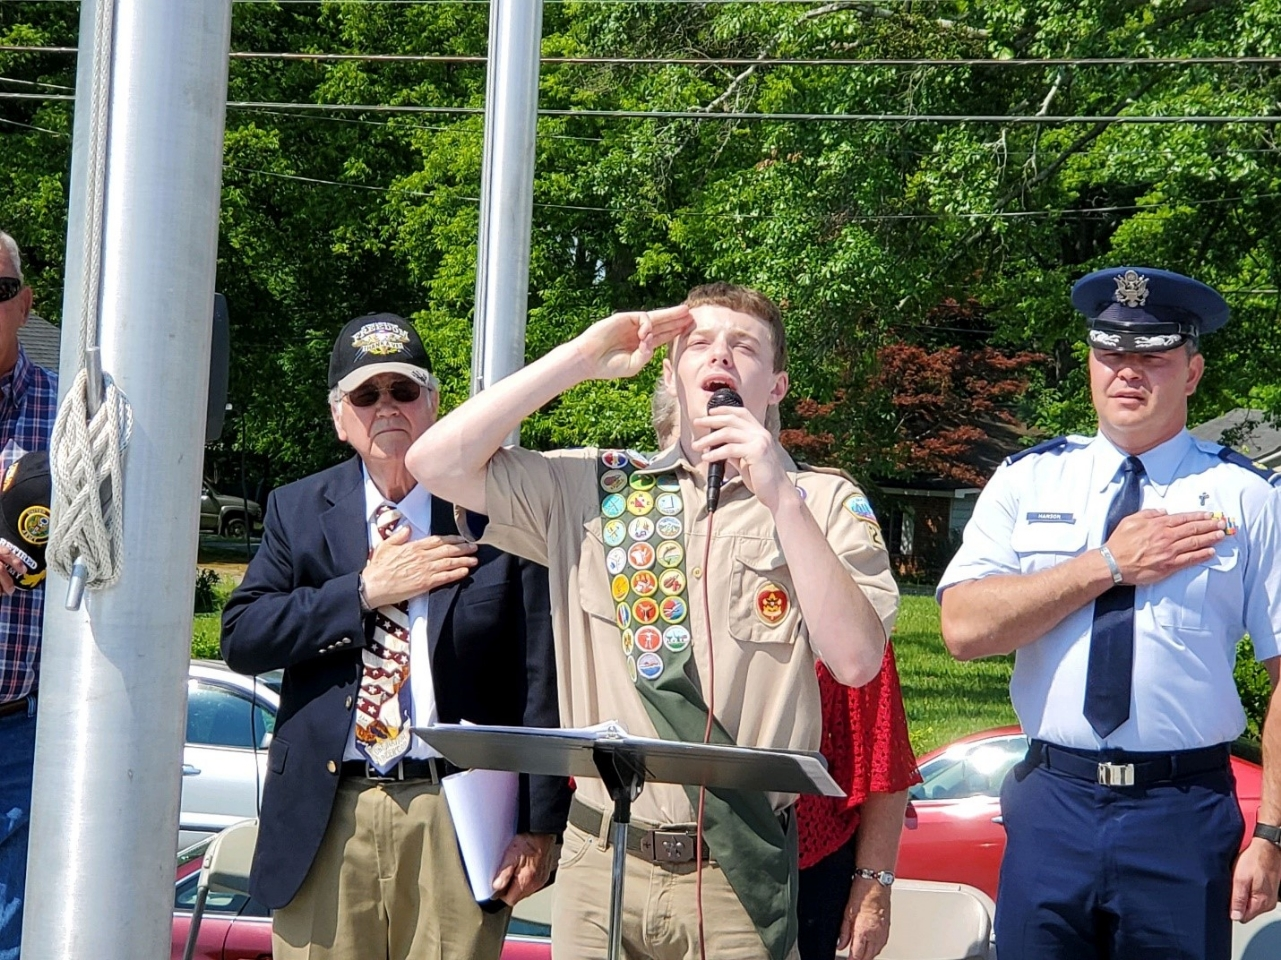 The Pledge of Allegiance led by Eagle Scout Grant Wilson of troop 259 out of Bremen, GA.